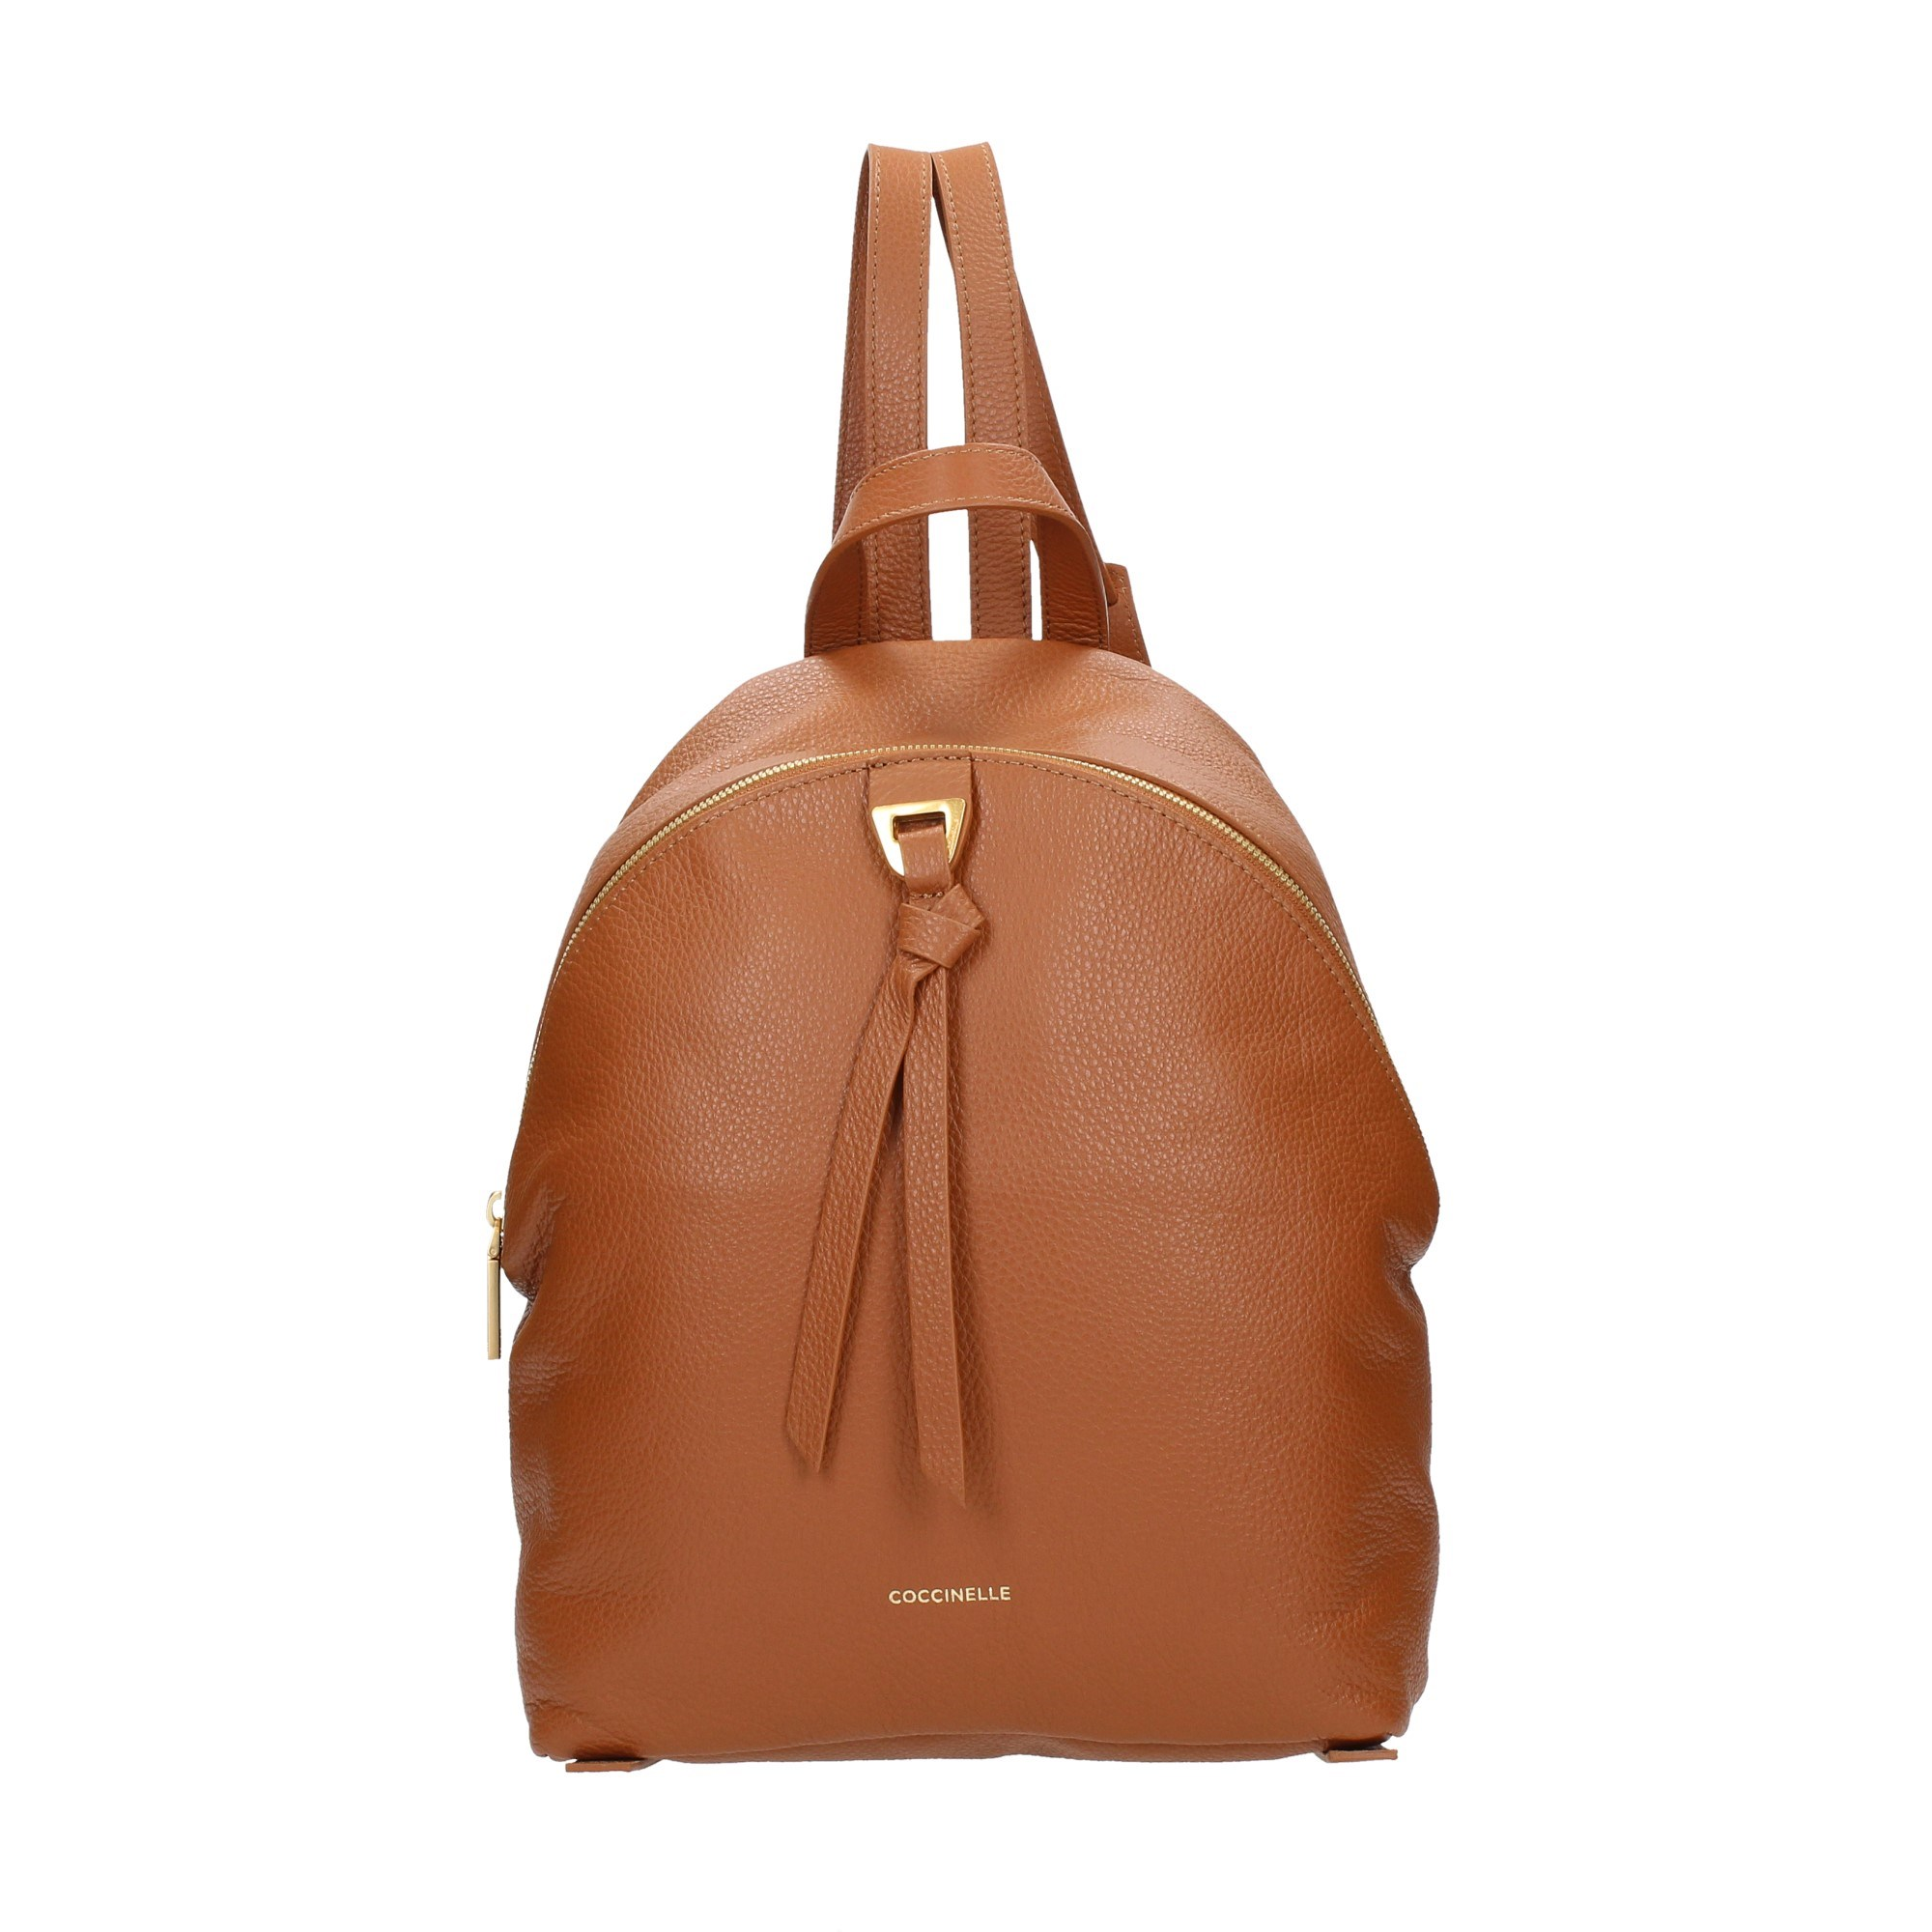 Coccinelle Accessories Women Backpack Leather GL5 140101